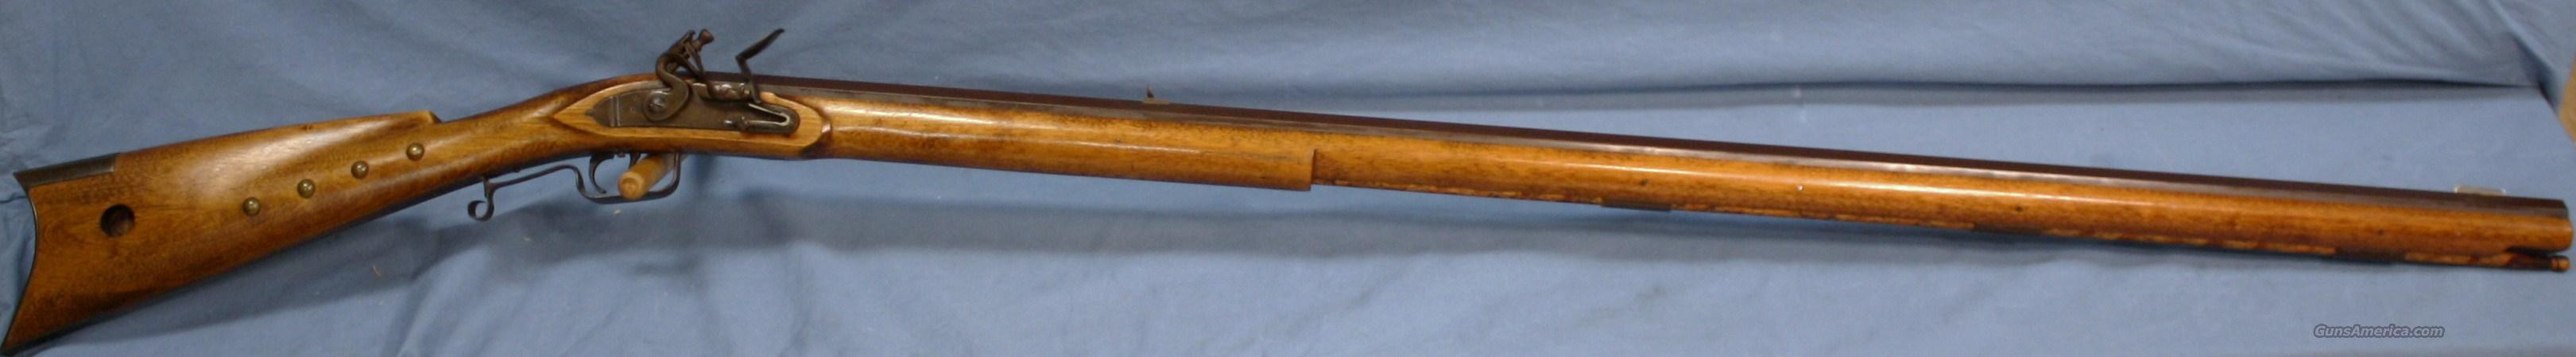 Dixie Tennessee Mountain Flintlock Rifle 50 Caliber  Guns > Rifles > Muzzleloading Replica Rifles (flint)